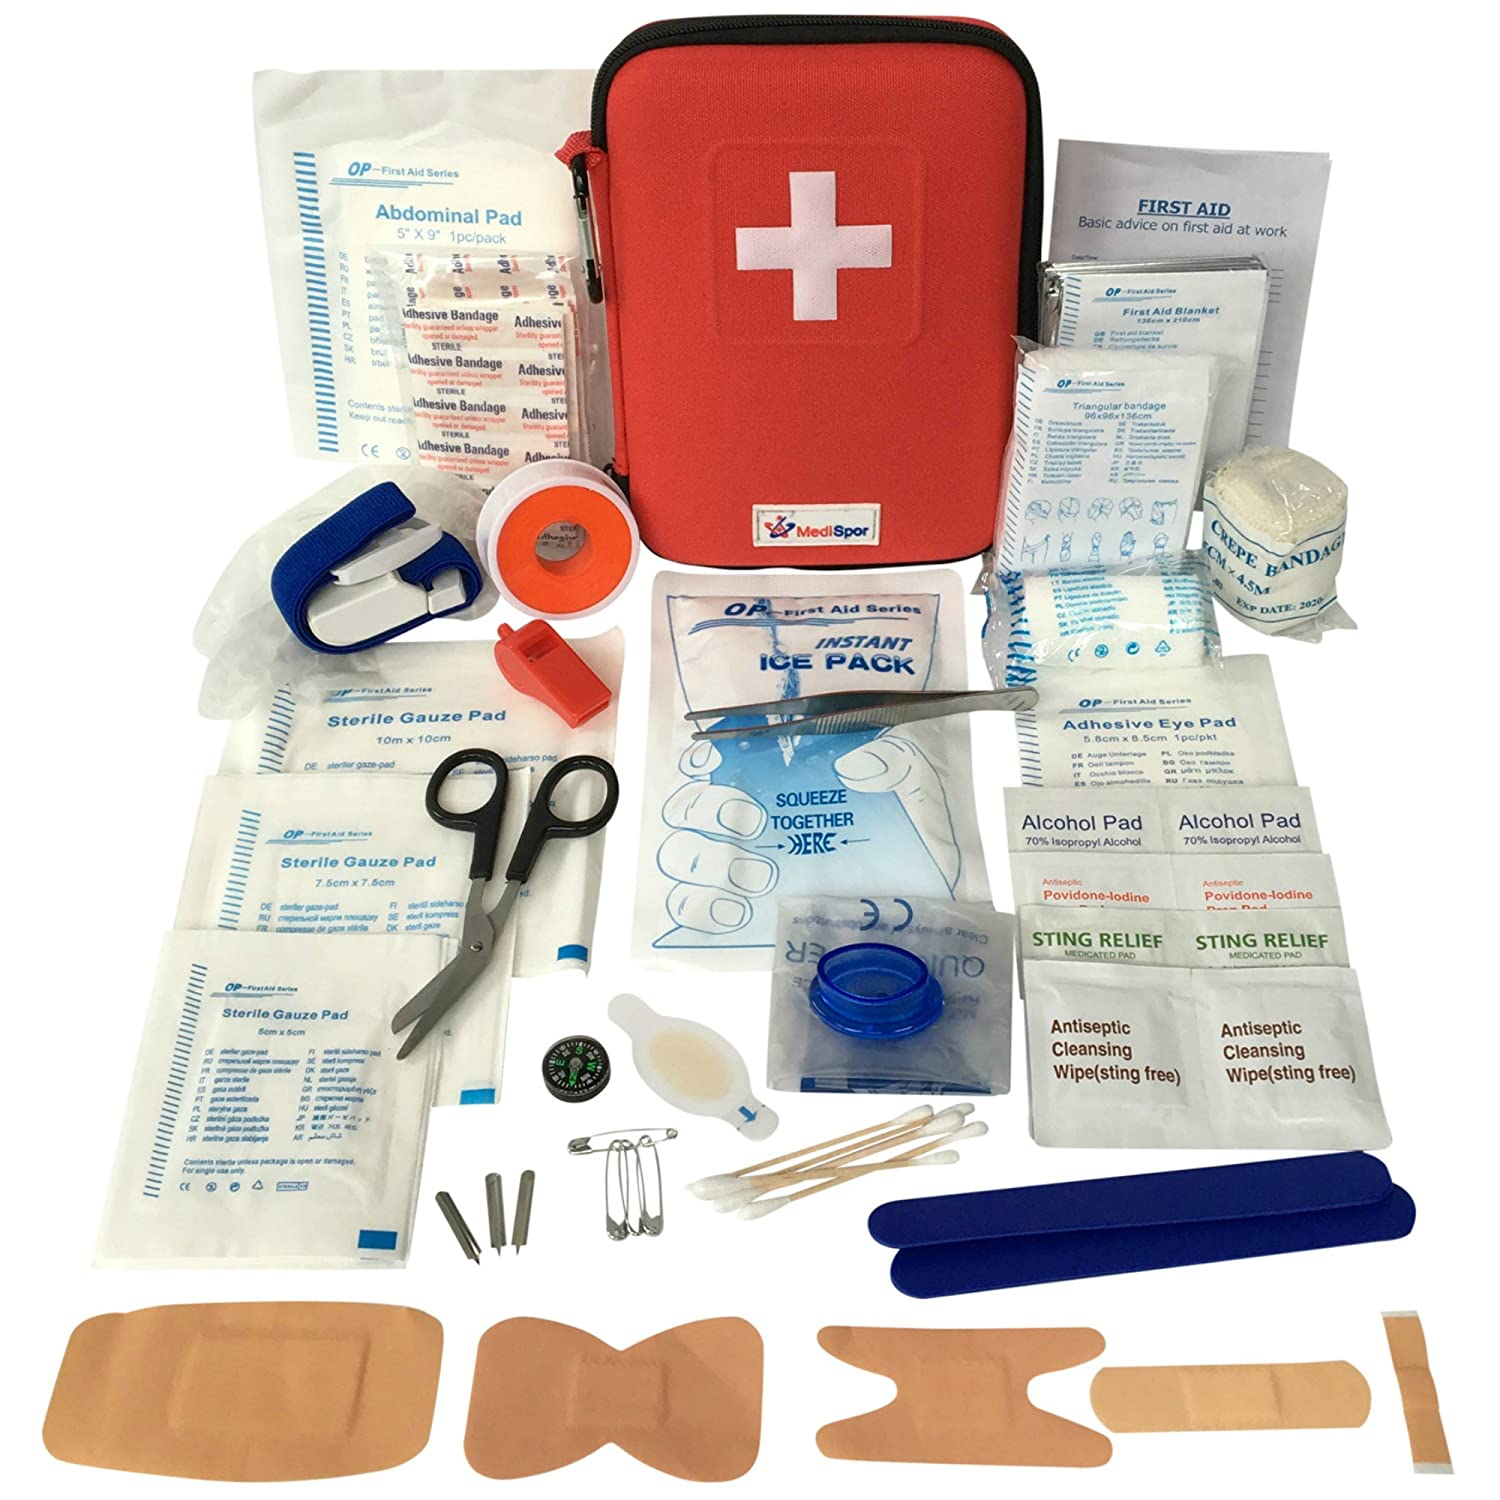 Best Backpacking and Trekking Gear, Best first aid kit for backpacking, best lightweight first aid box, Buy affordable first aid box online, Best first aid kit for hiking